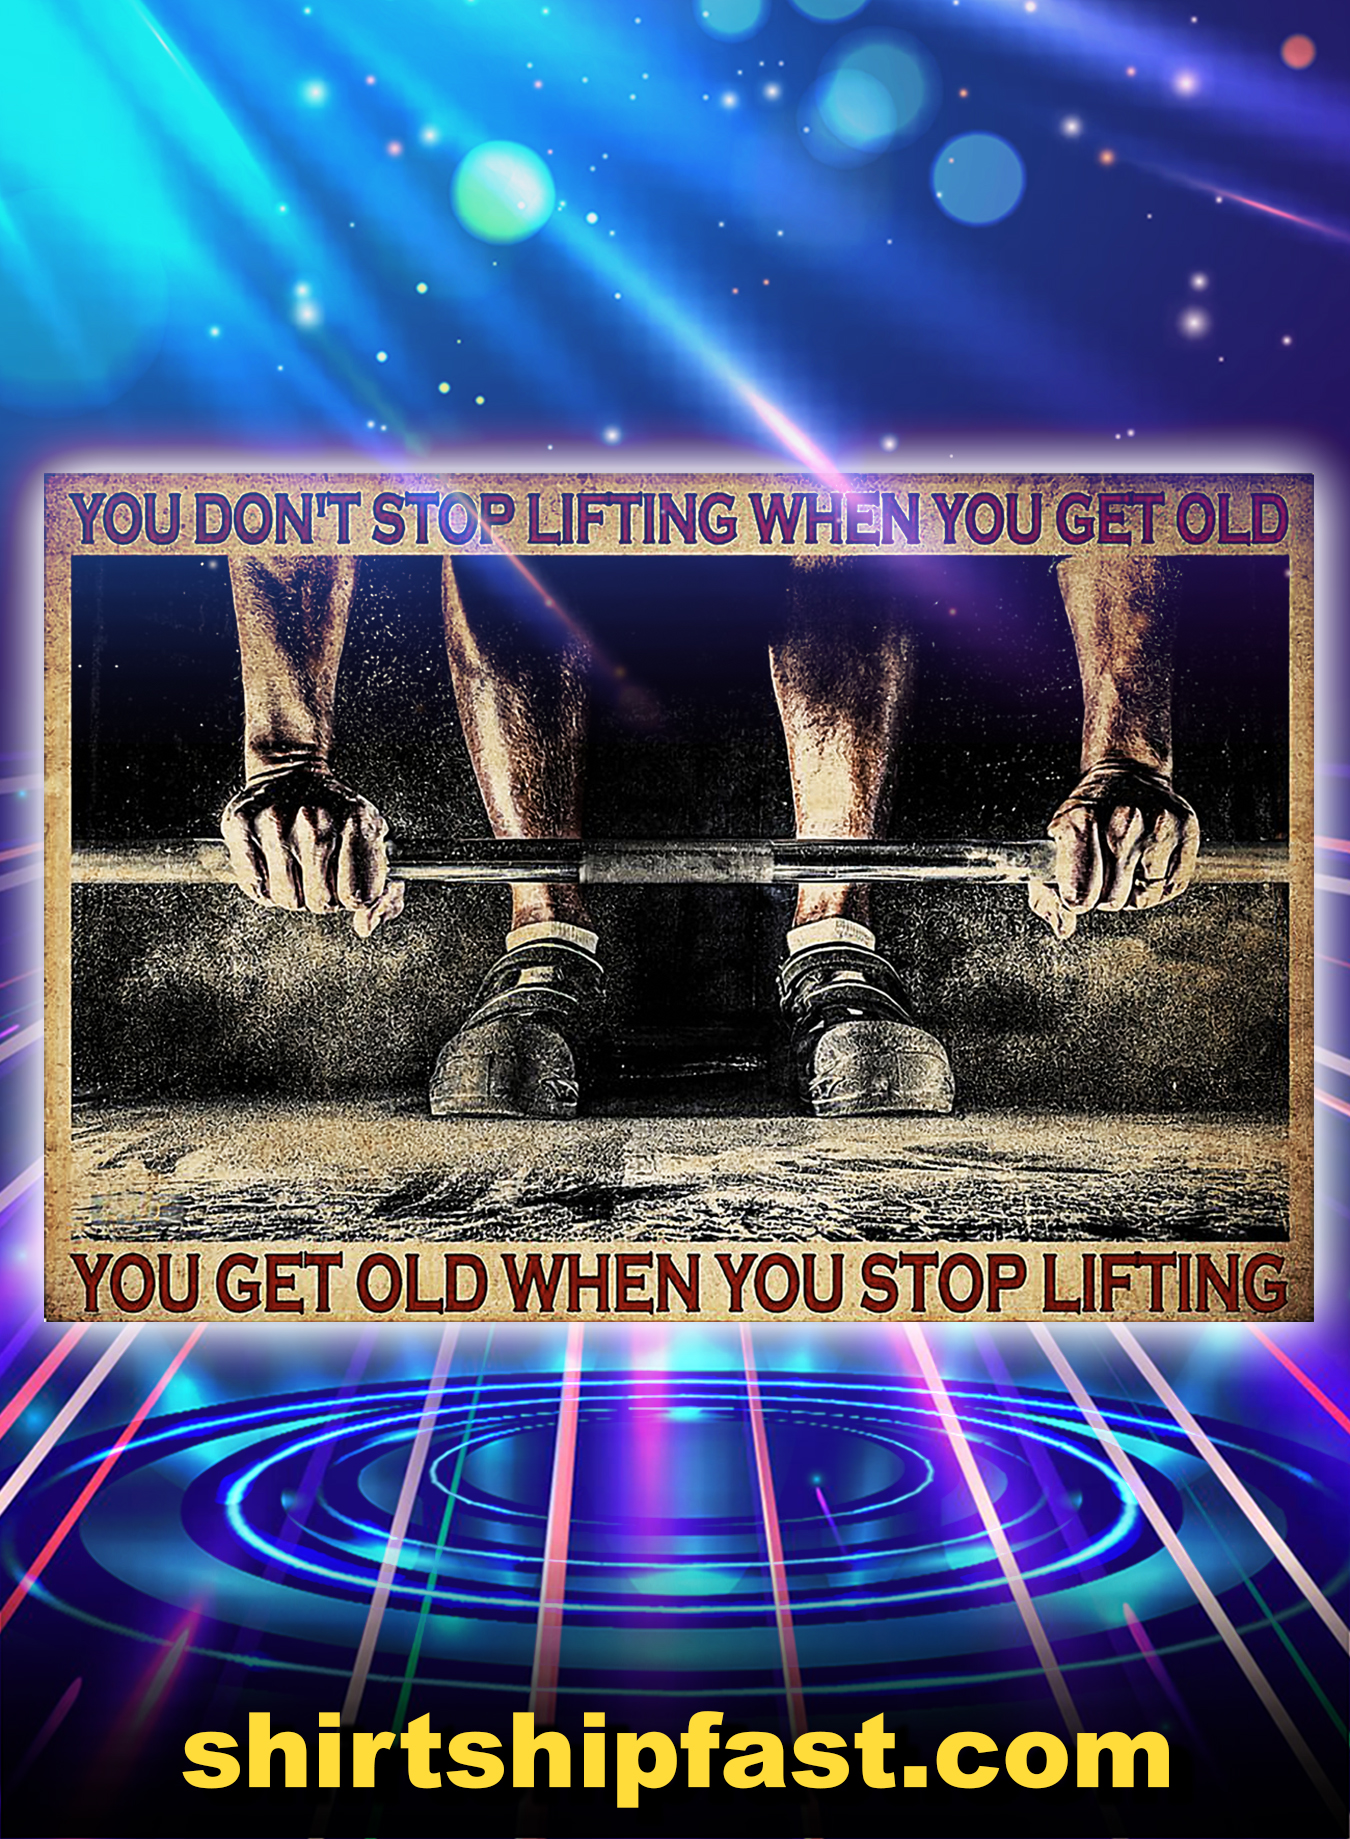 Poster Fitness you don't stop lifting when you get old - A3